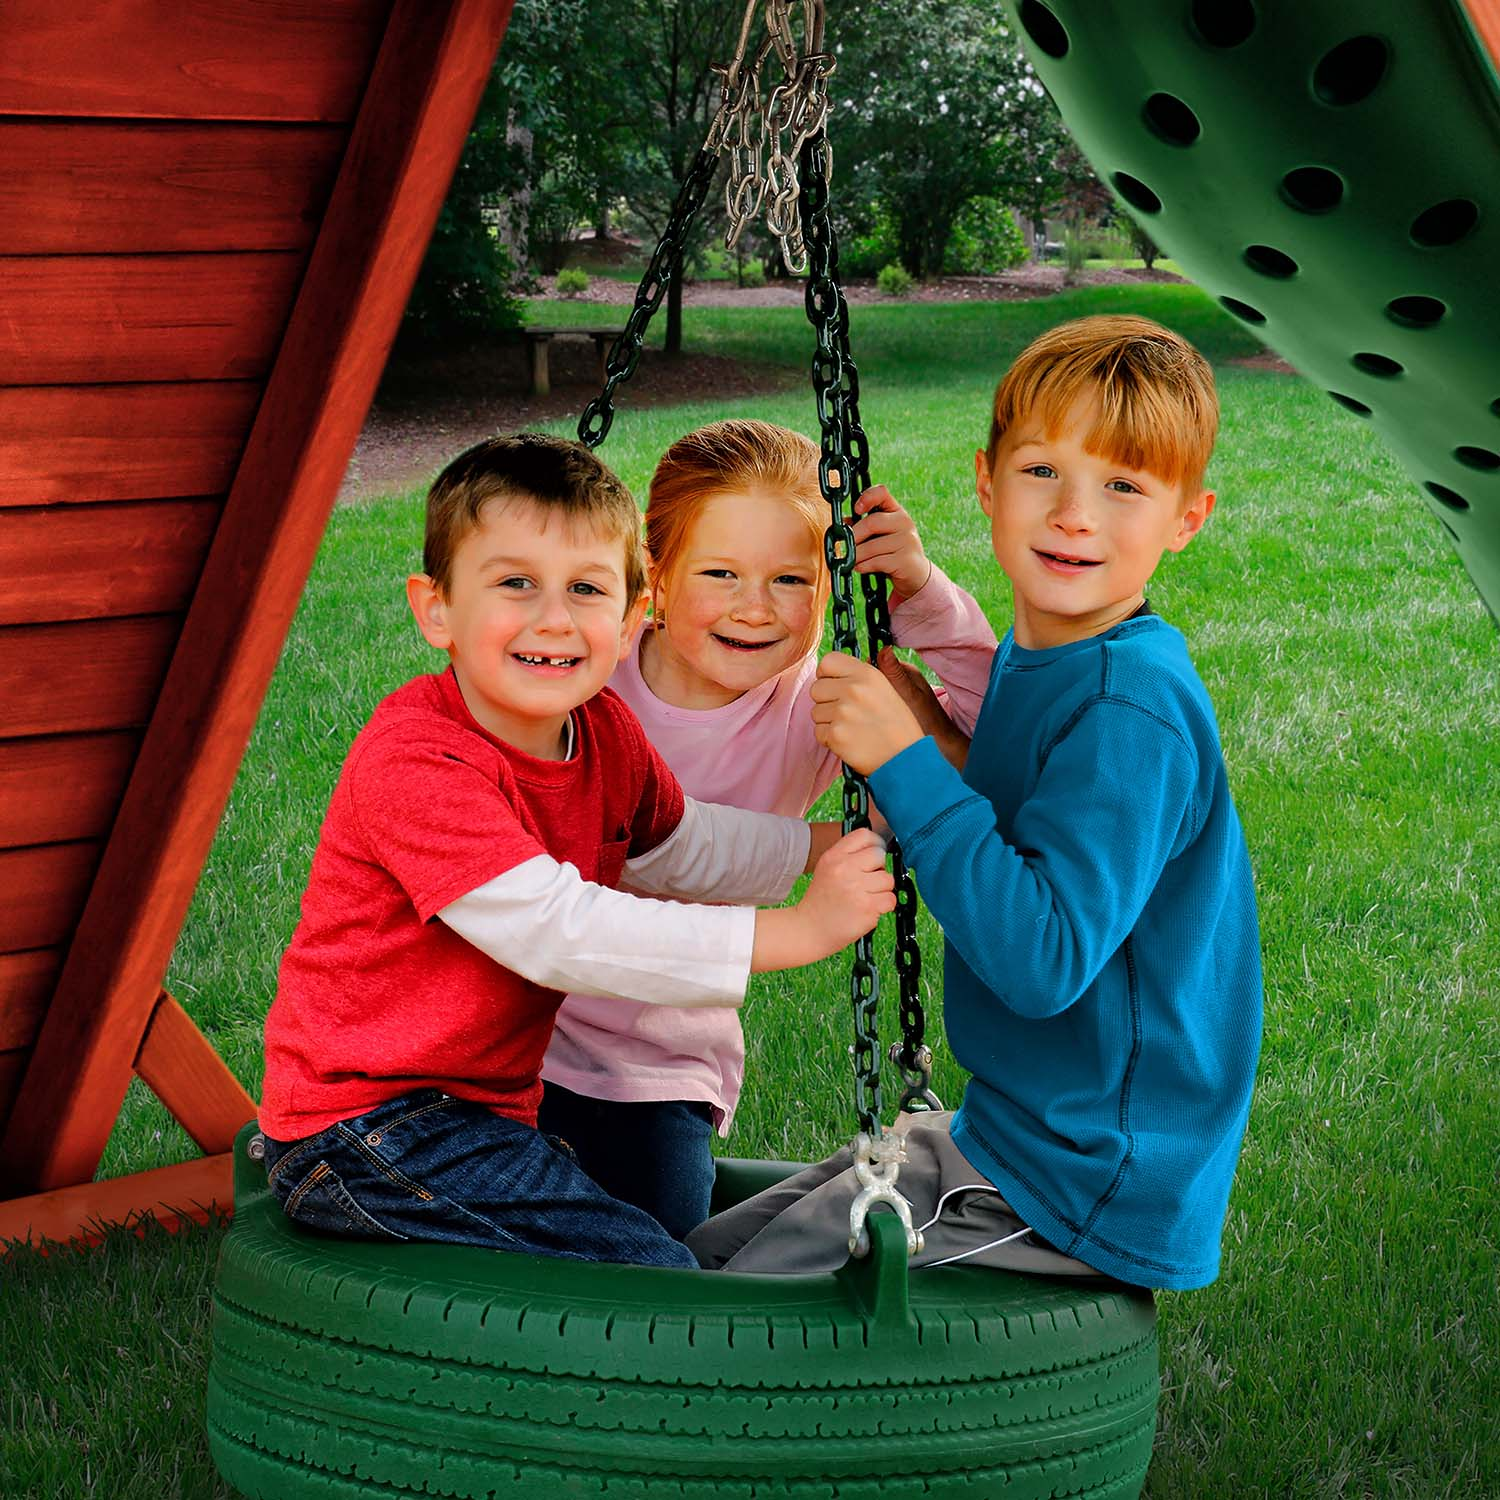 Gorilla-Playsets-Tire-Swing-Green-W-Kids